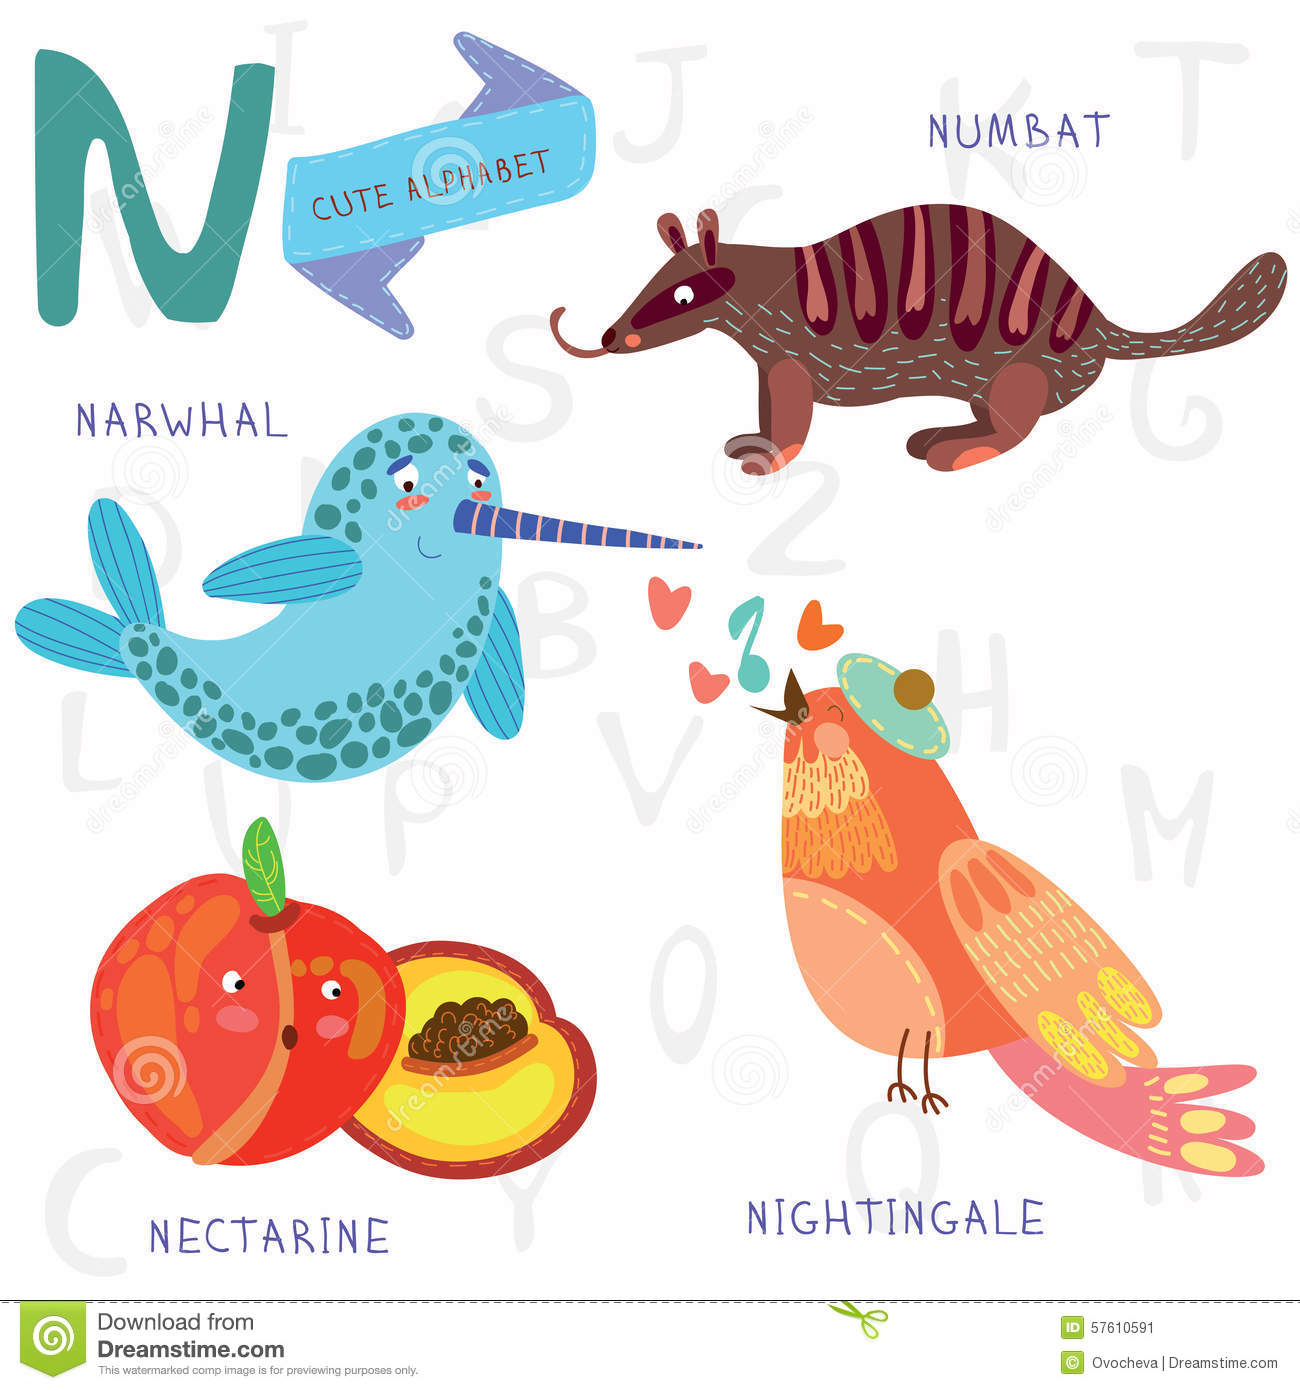 Very Cute Alphabet N Letter Rwhal Numb At Nightingale